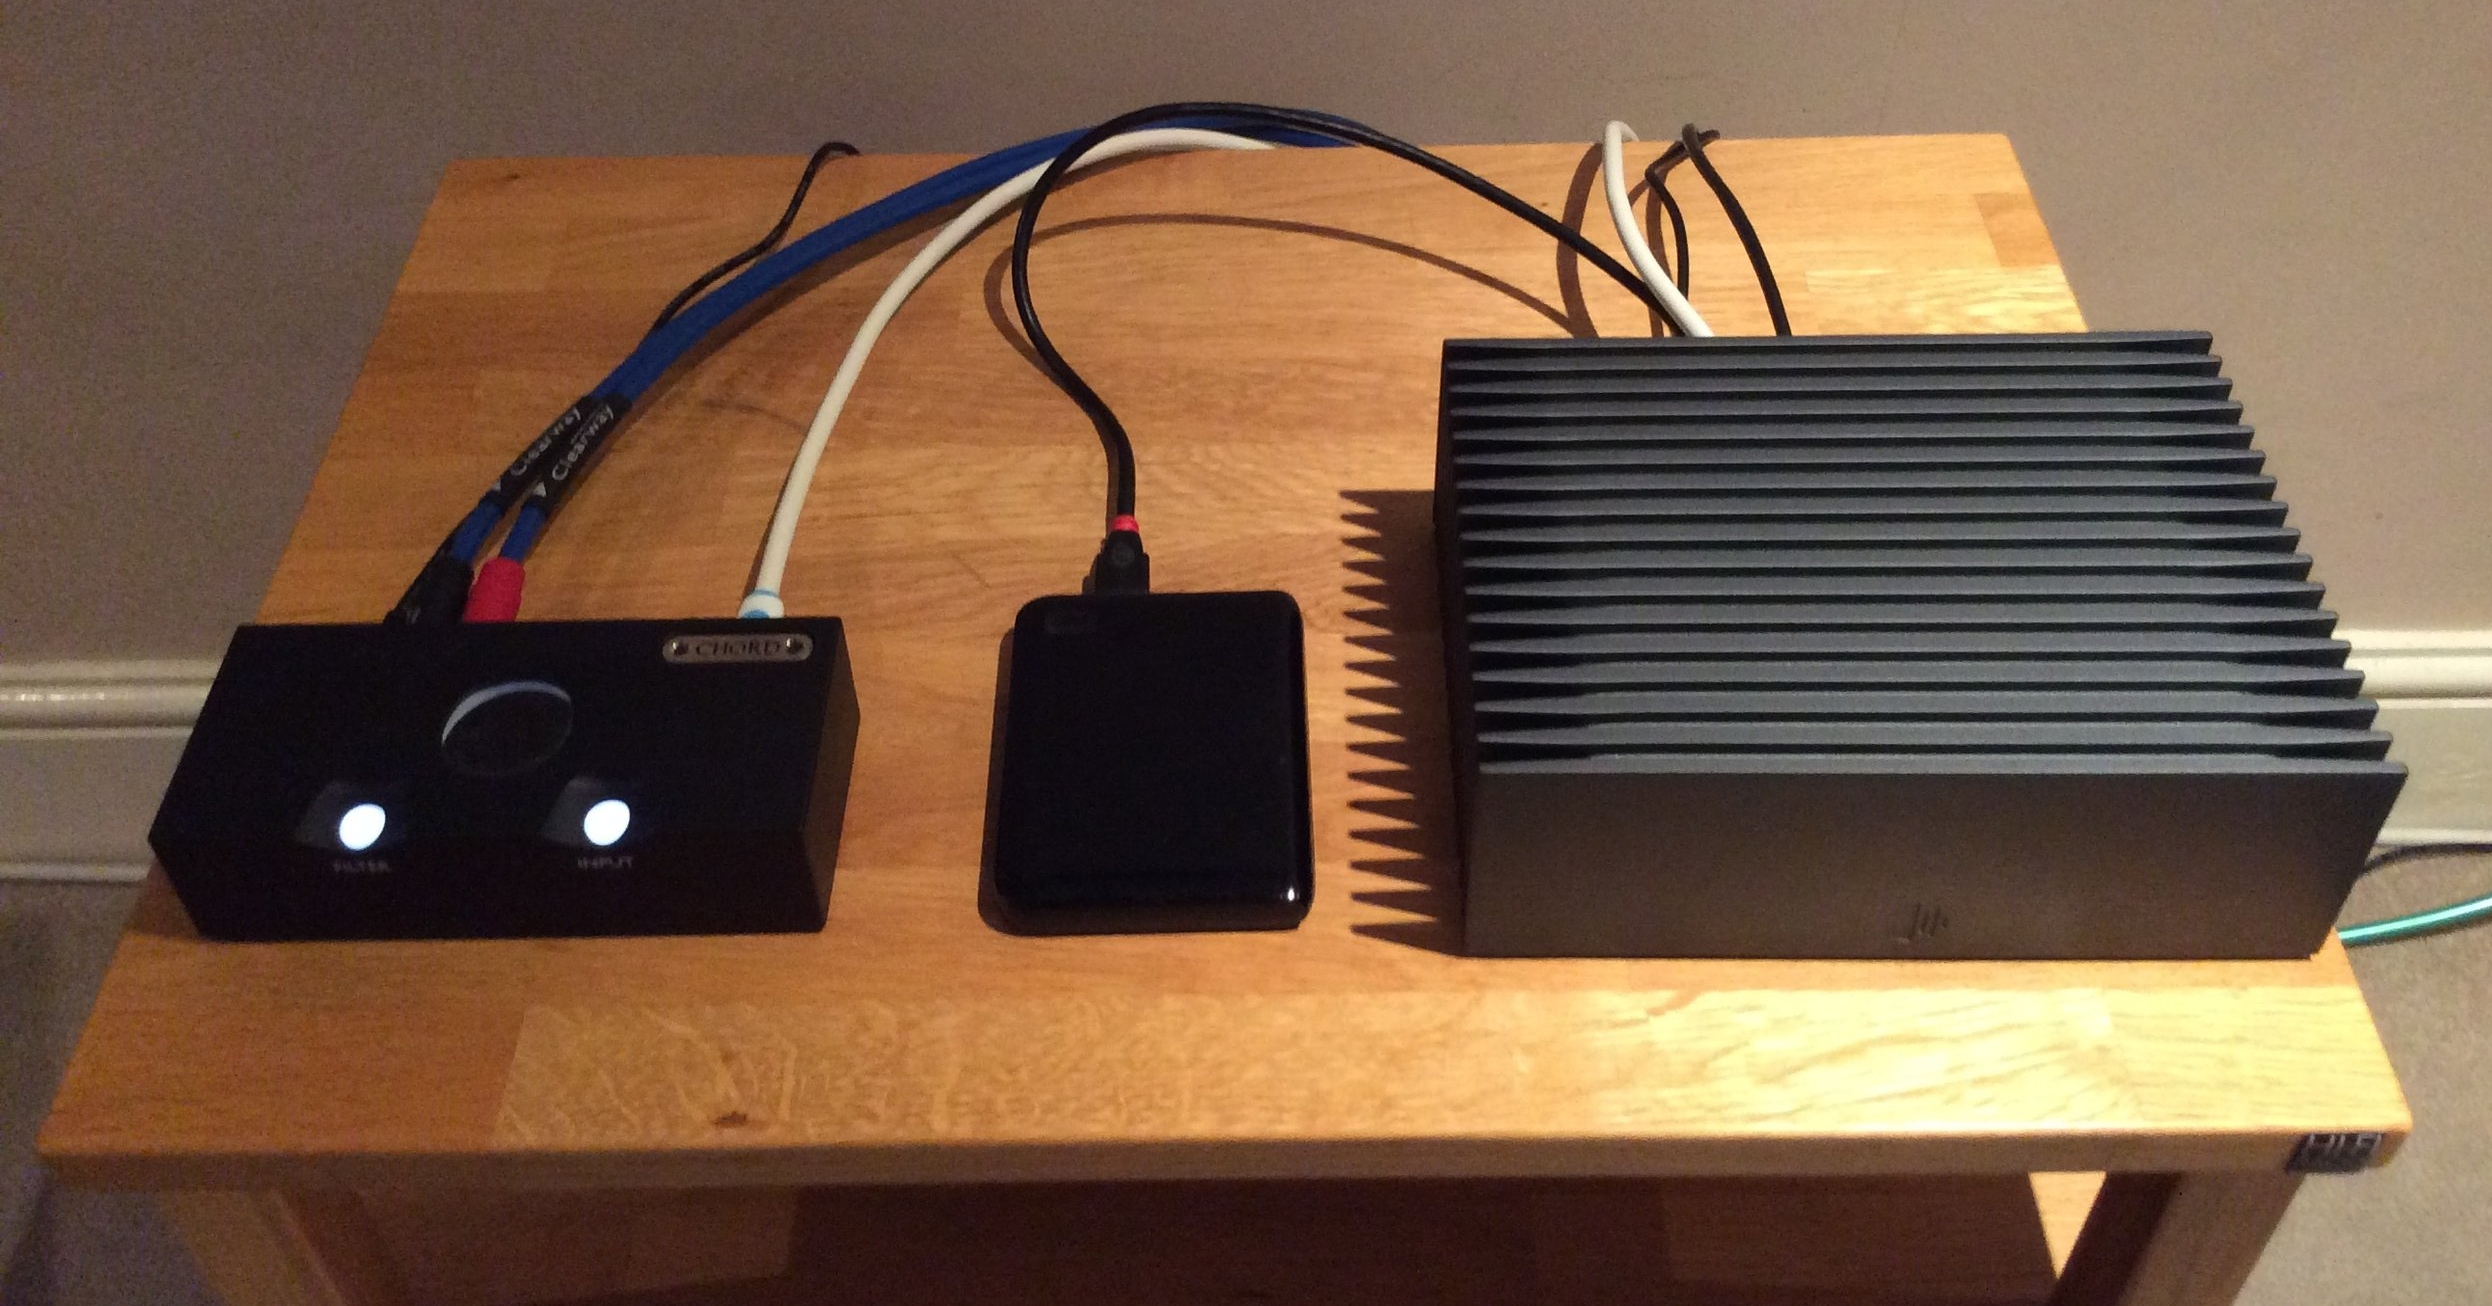 From the right: Roon Nucleus Plus Server - 500GB WD USB Drive - Chord Qutest USB DAC